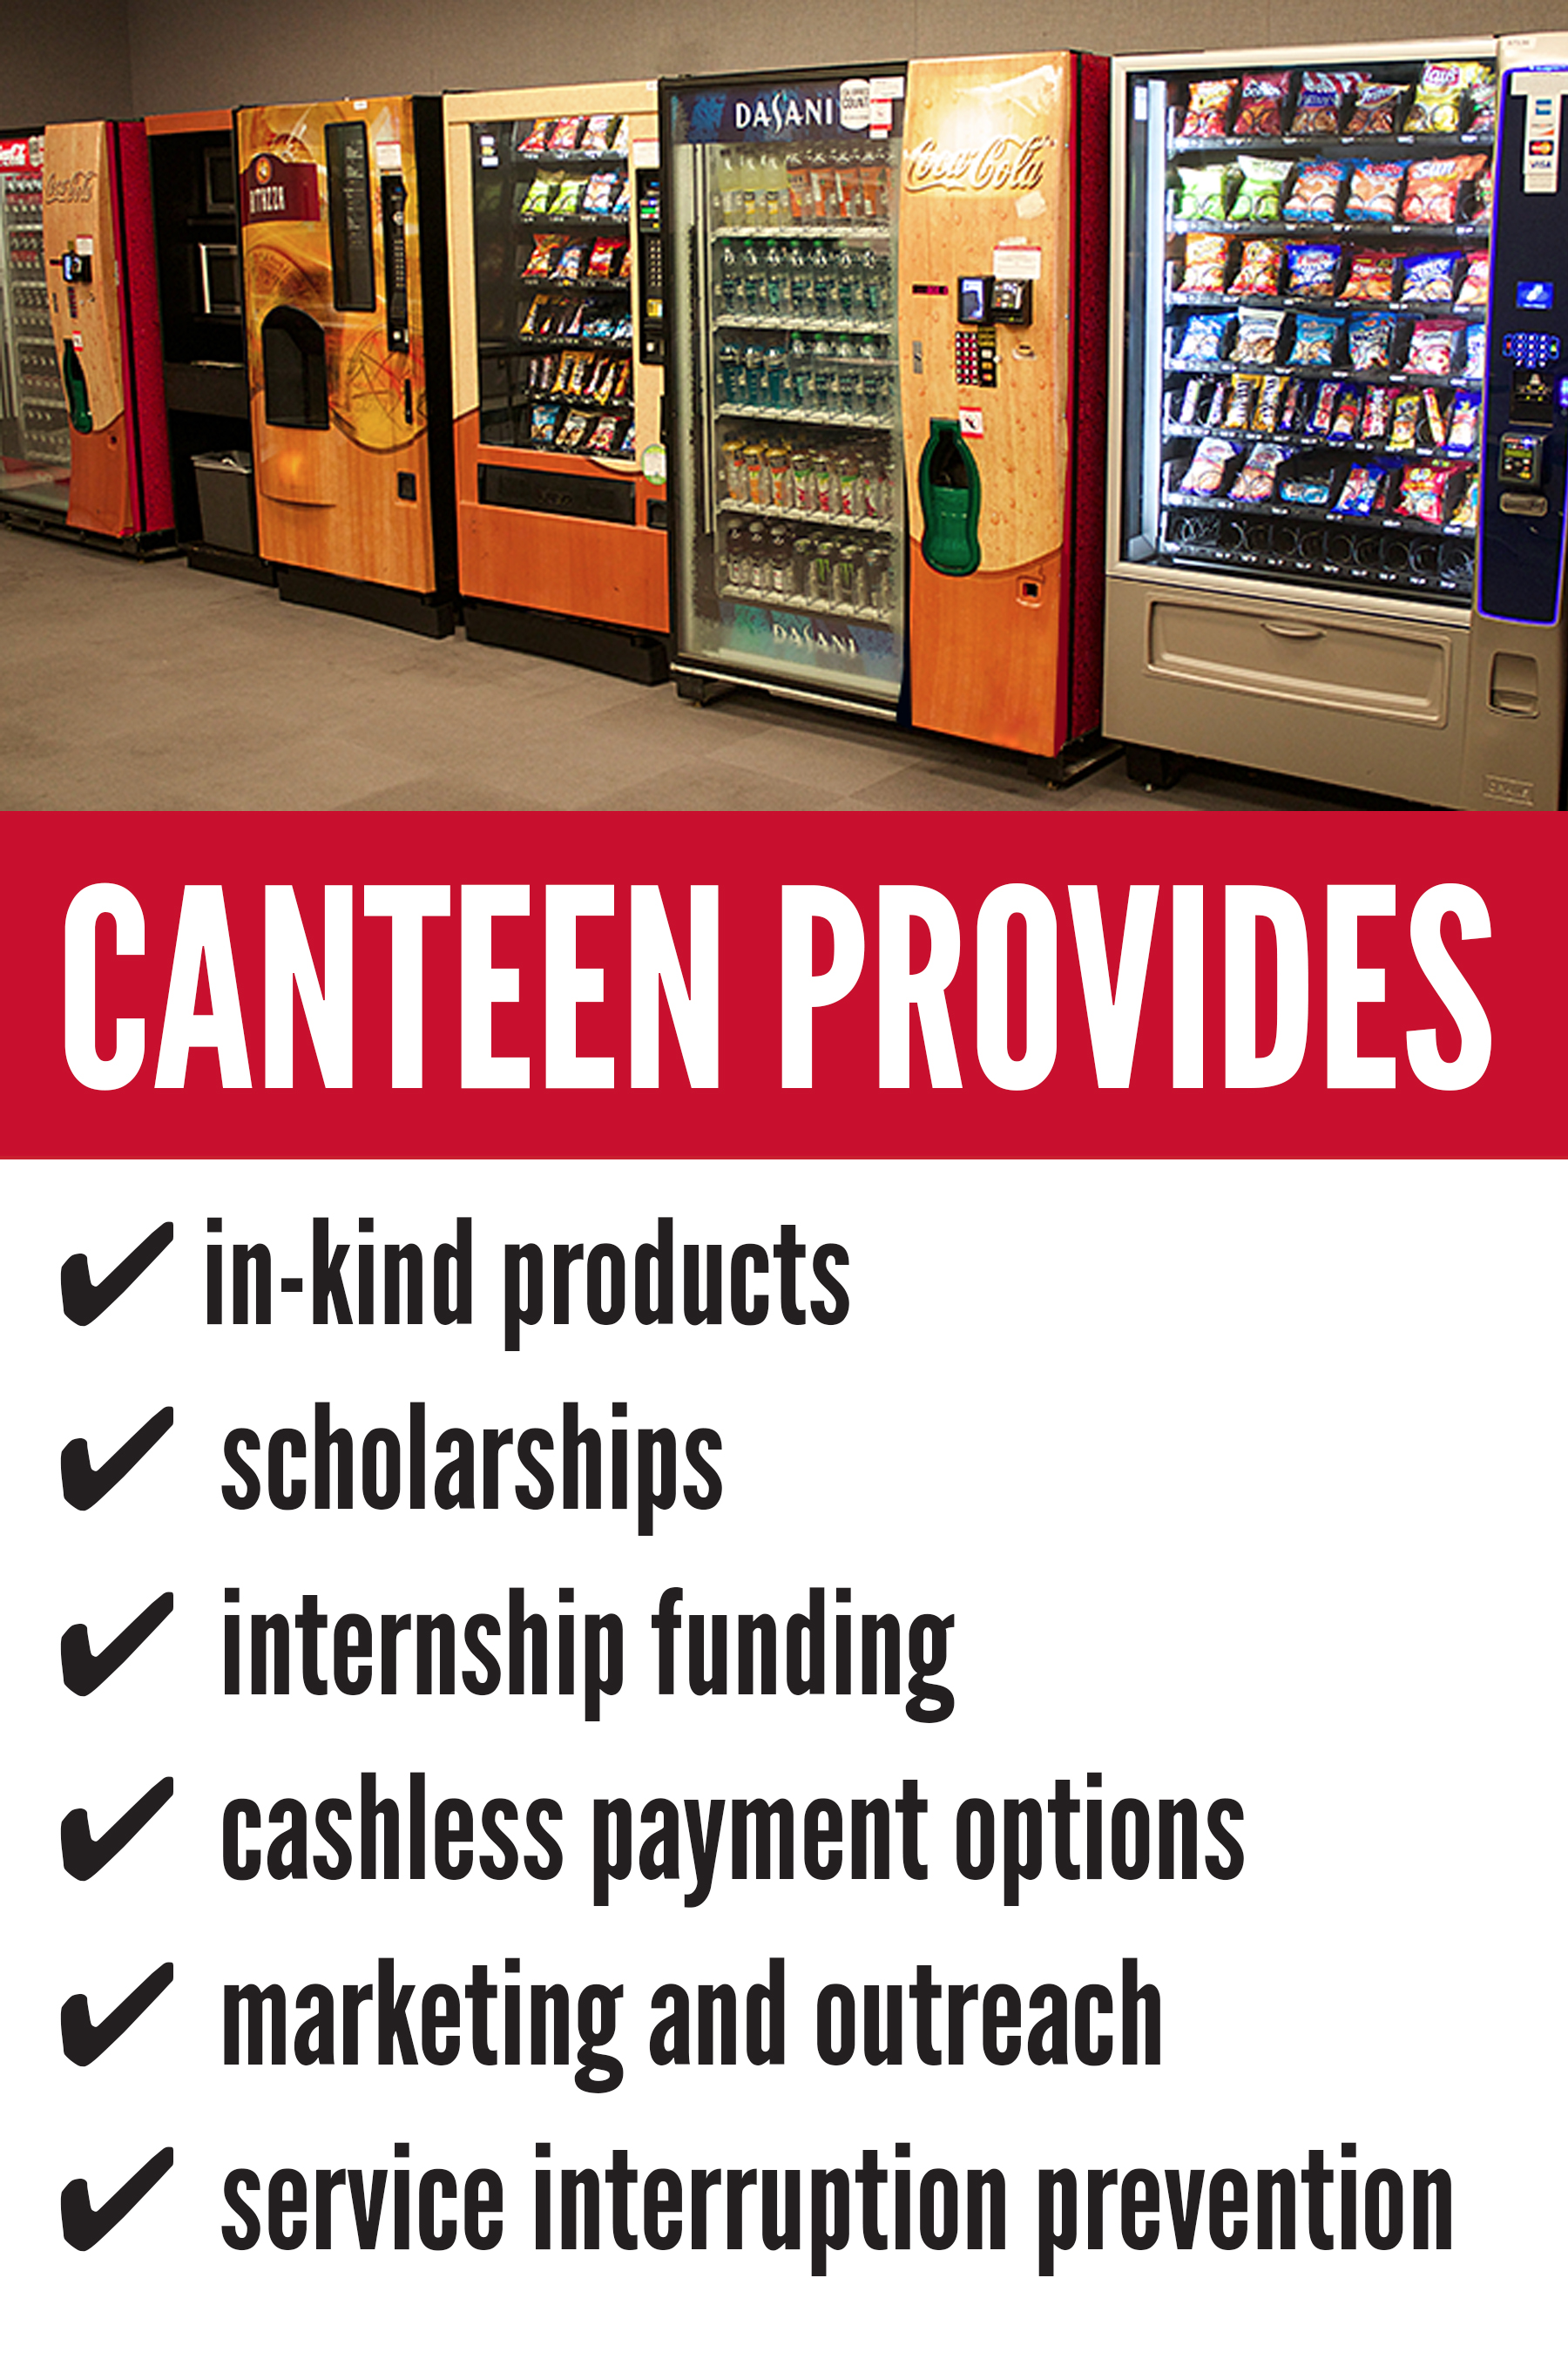 When hunger calls, the campus vending machine is always ...